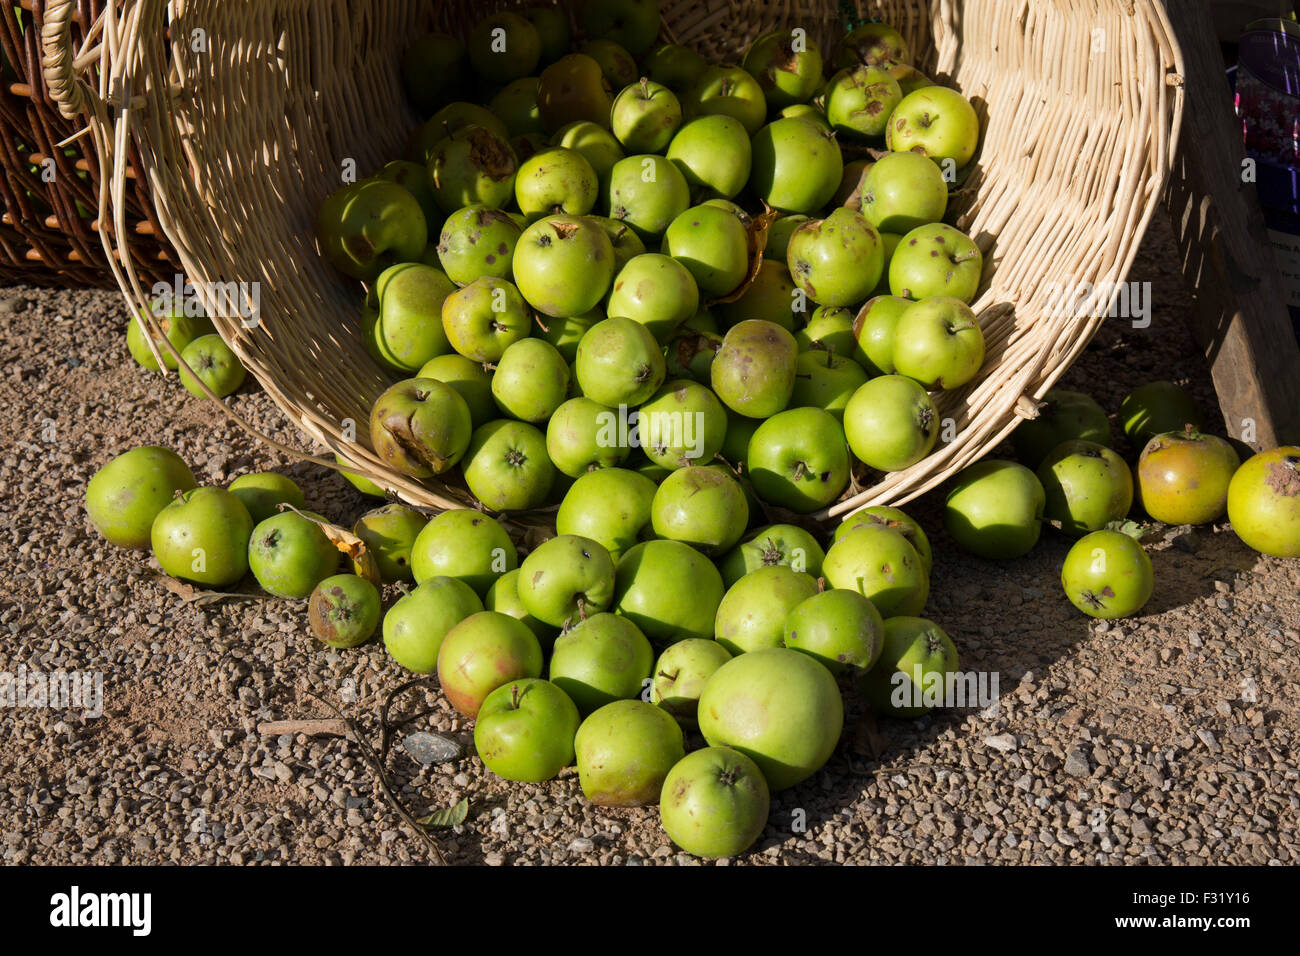 Newly picked English apples in a basket. - Stock Image